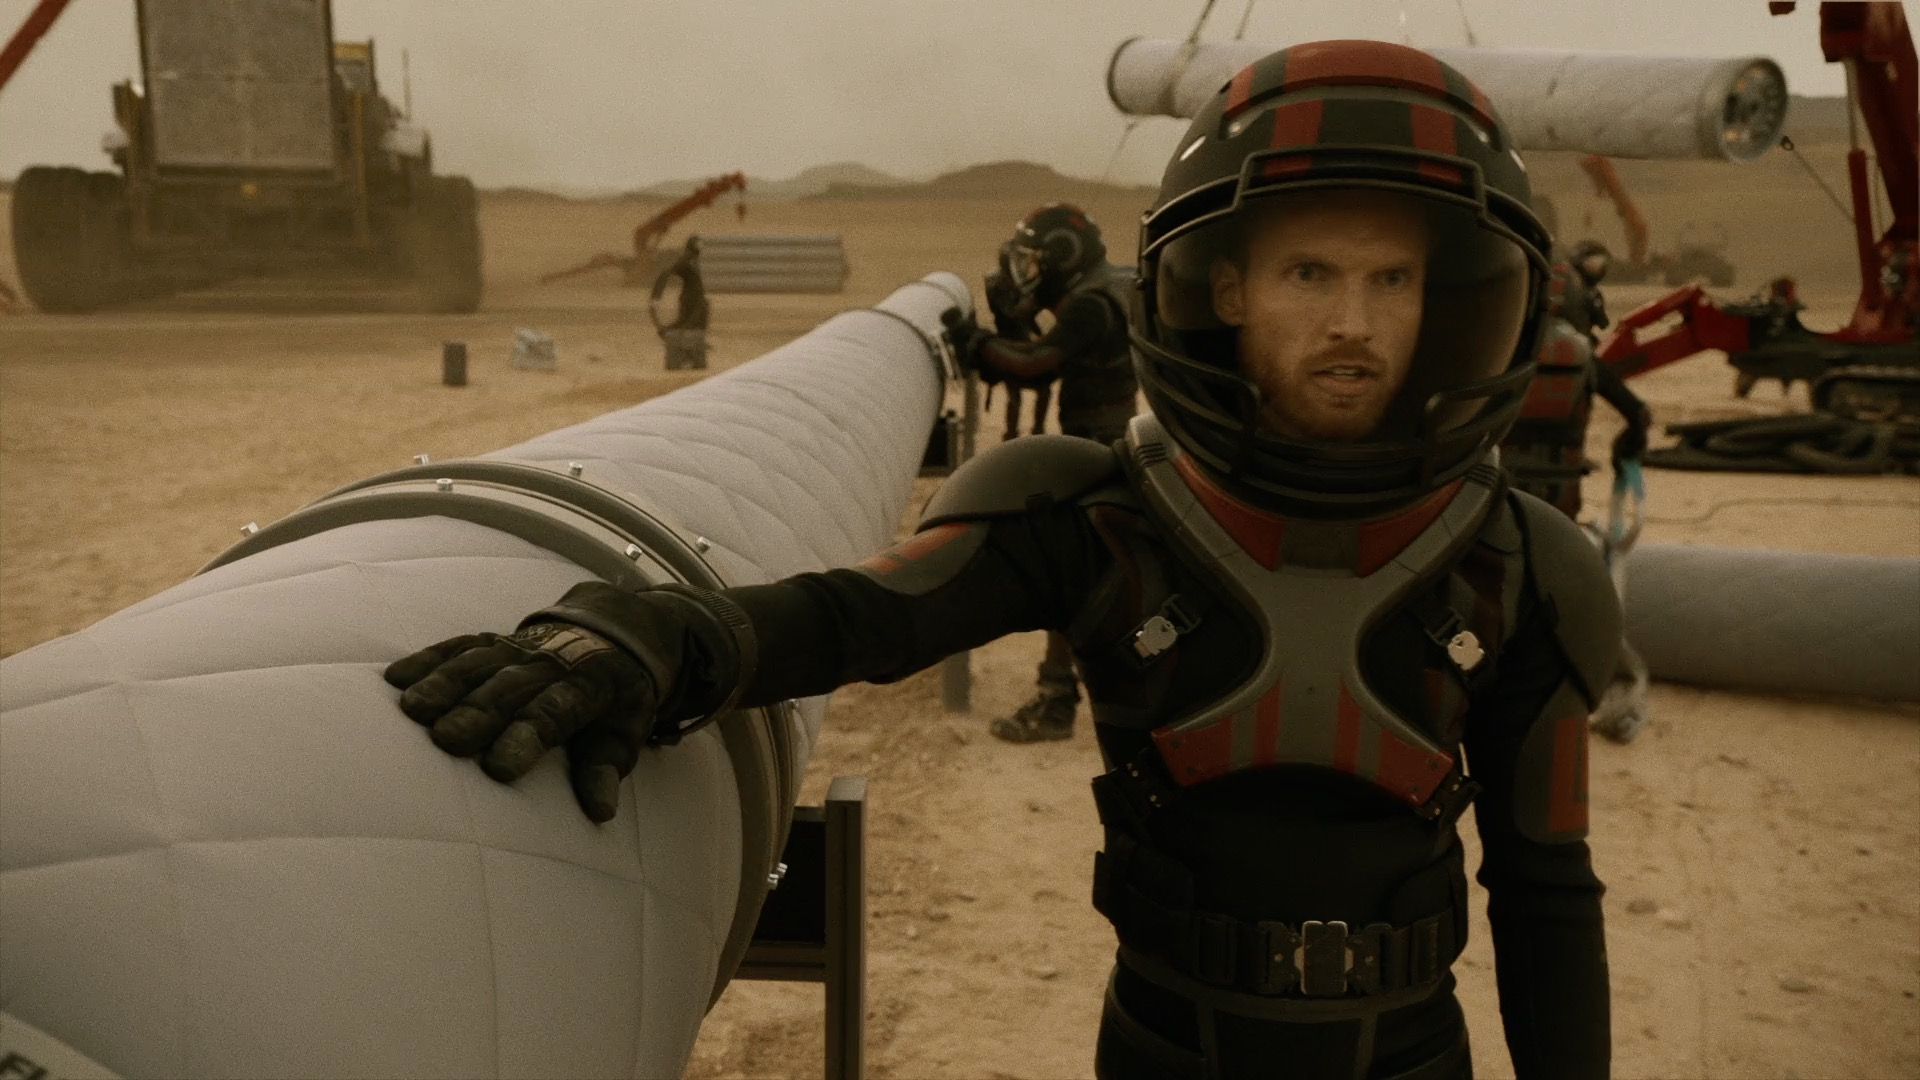 Martin Angerbauer in Mars (2016)